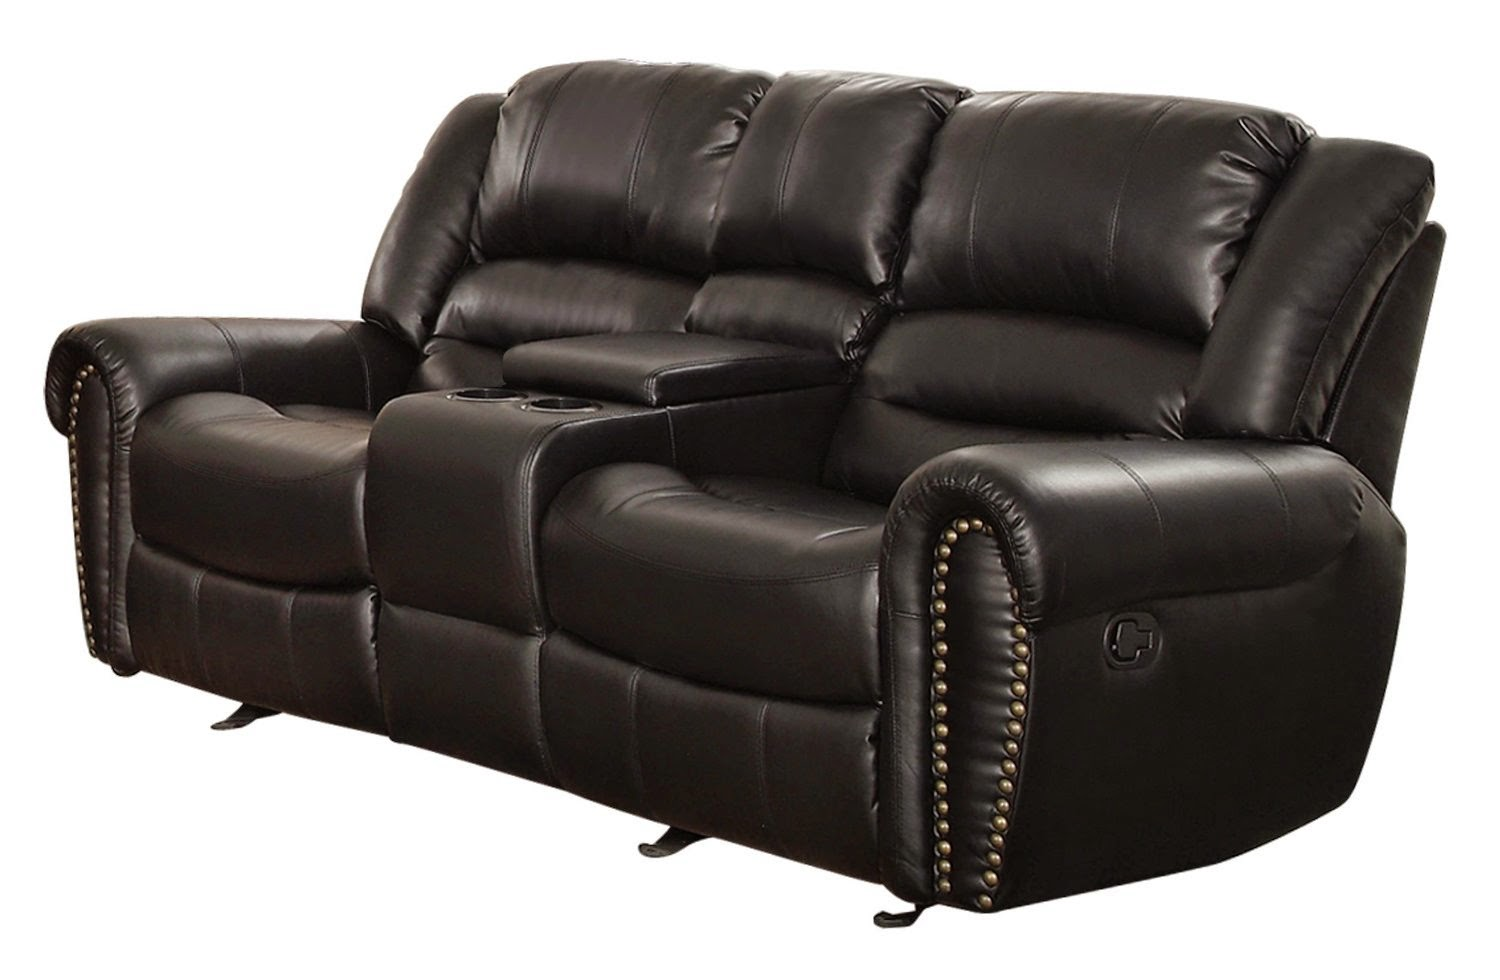 Reclining sofa loveseat and chair sets march 2015 for Couch and loveseat